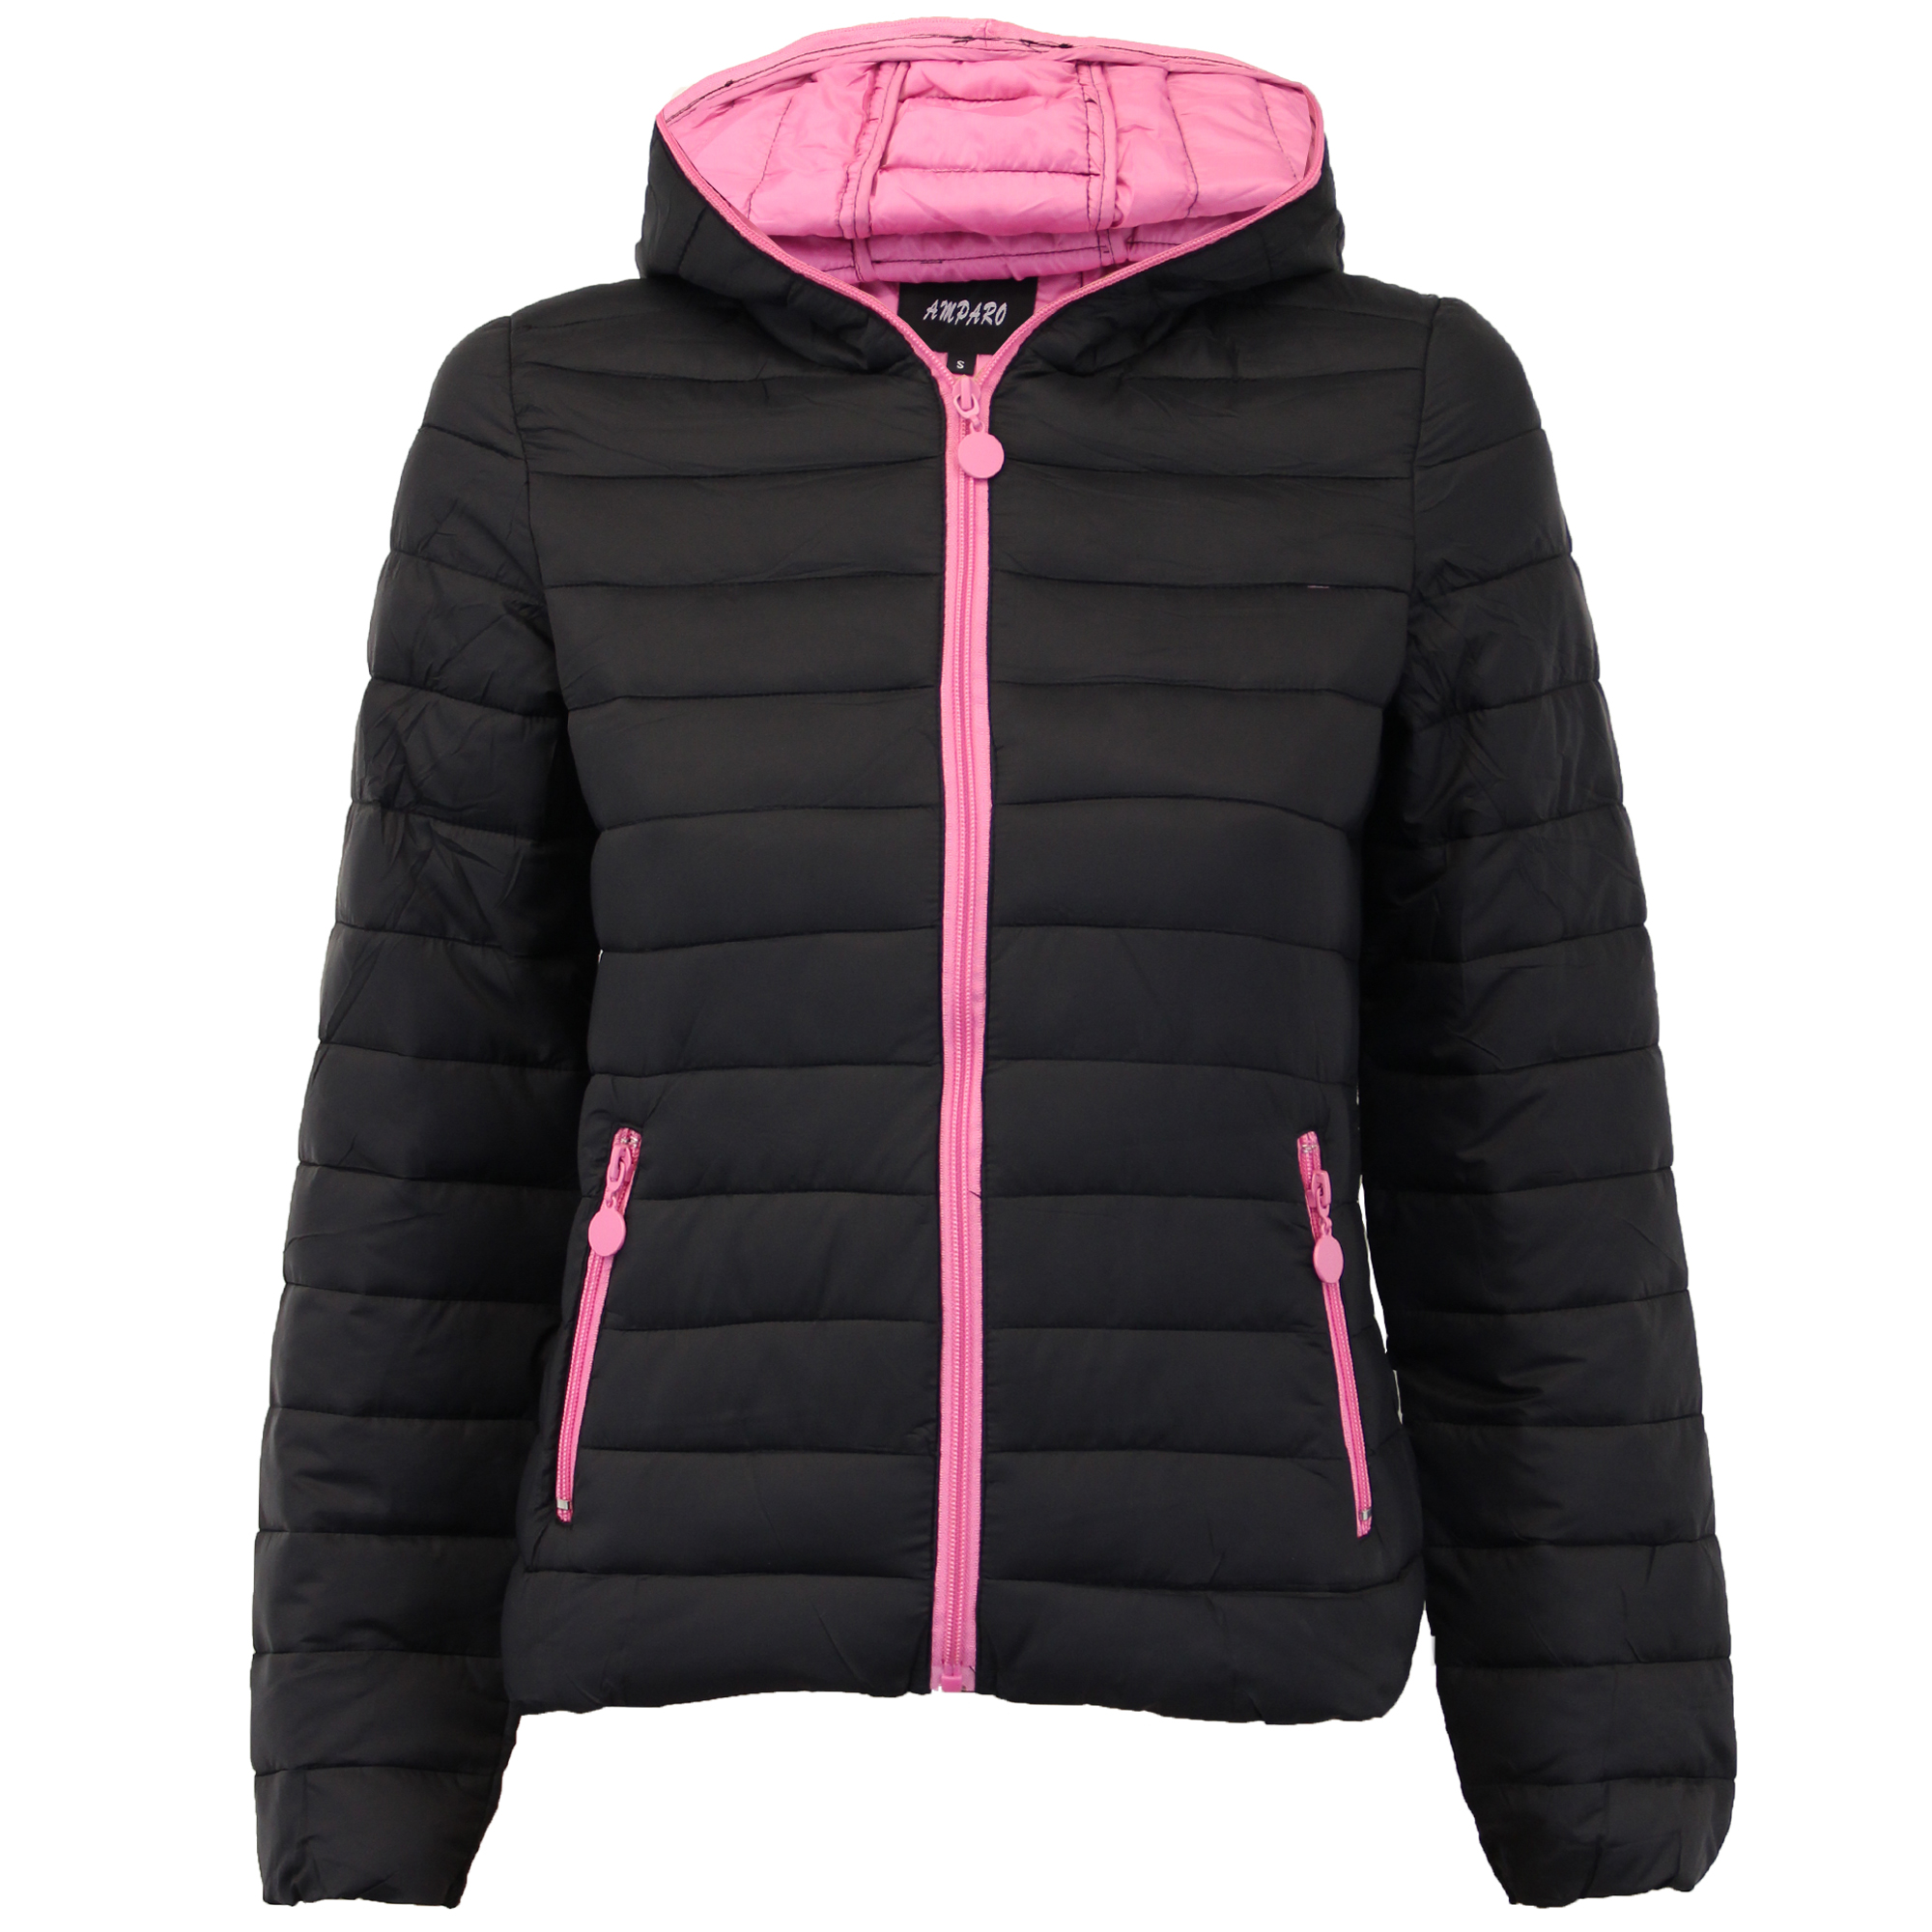 Ladies Padded Jacket Womens Coat Quilted DOWN Hooded Funnel Neck Lined Winter | EBay